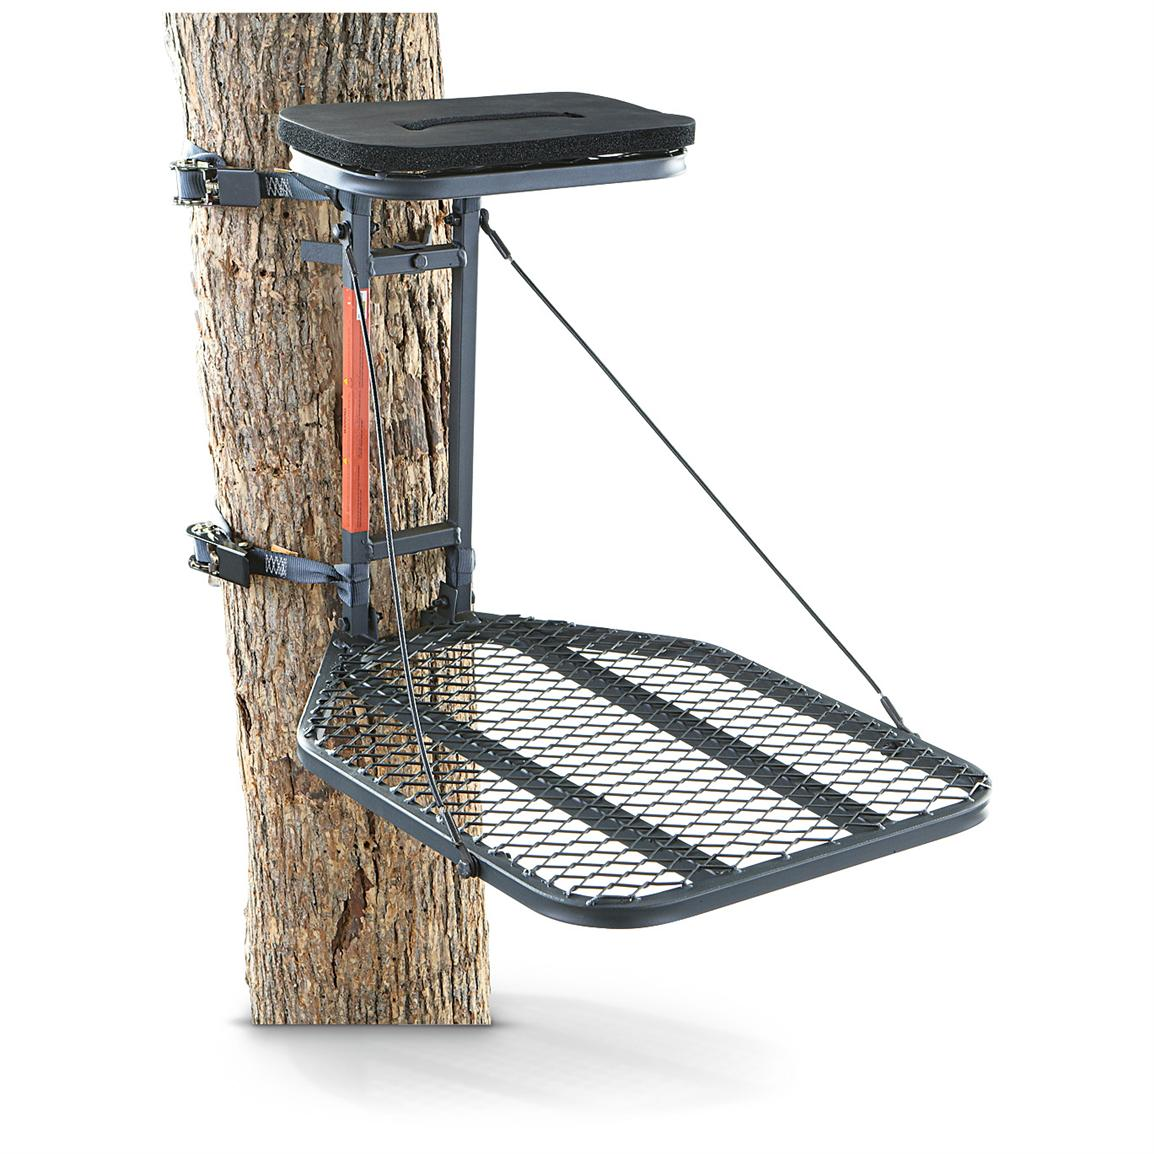 BONUS Guide Gear Hang-on Tree Stand when you buy ScentBlocker's Spiderweb Recon Bib. A $35.00 VALUE!